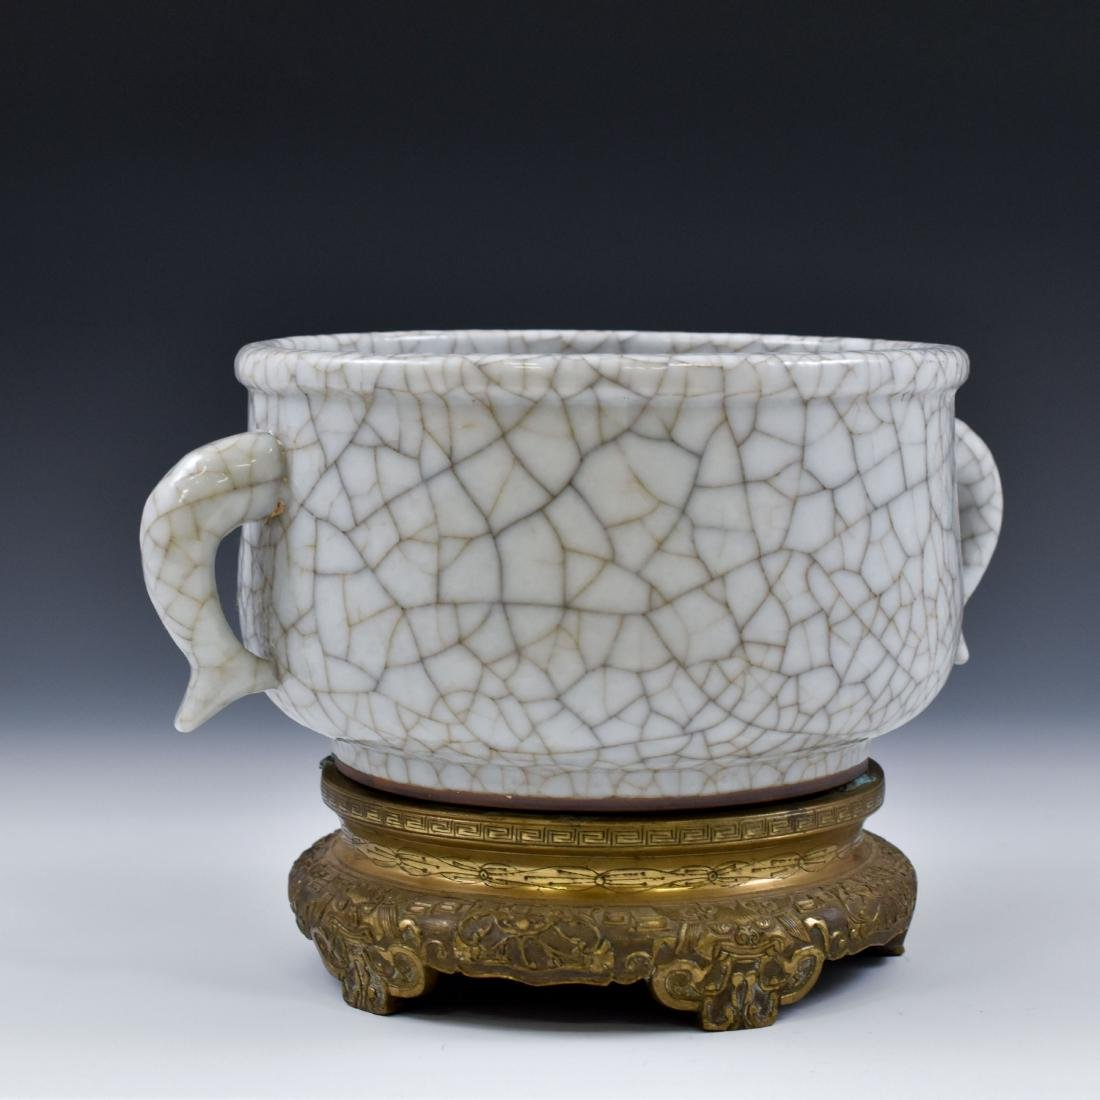 18TH C GE TYPE CENSER WITH FISH TAIL HANDLES ON STAND - 5